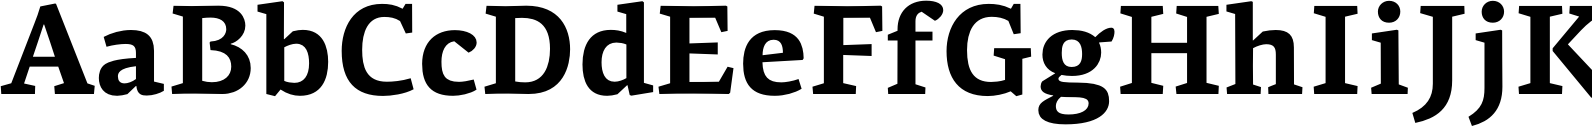 PFCentroSerifPro Bold Font